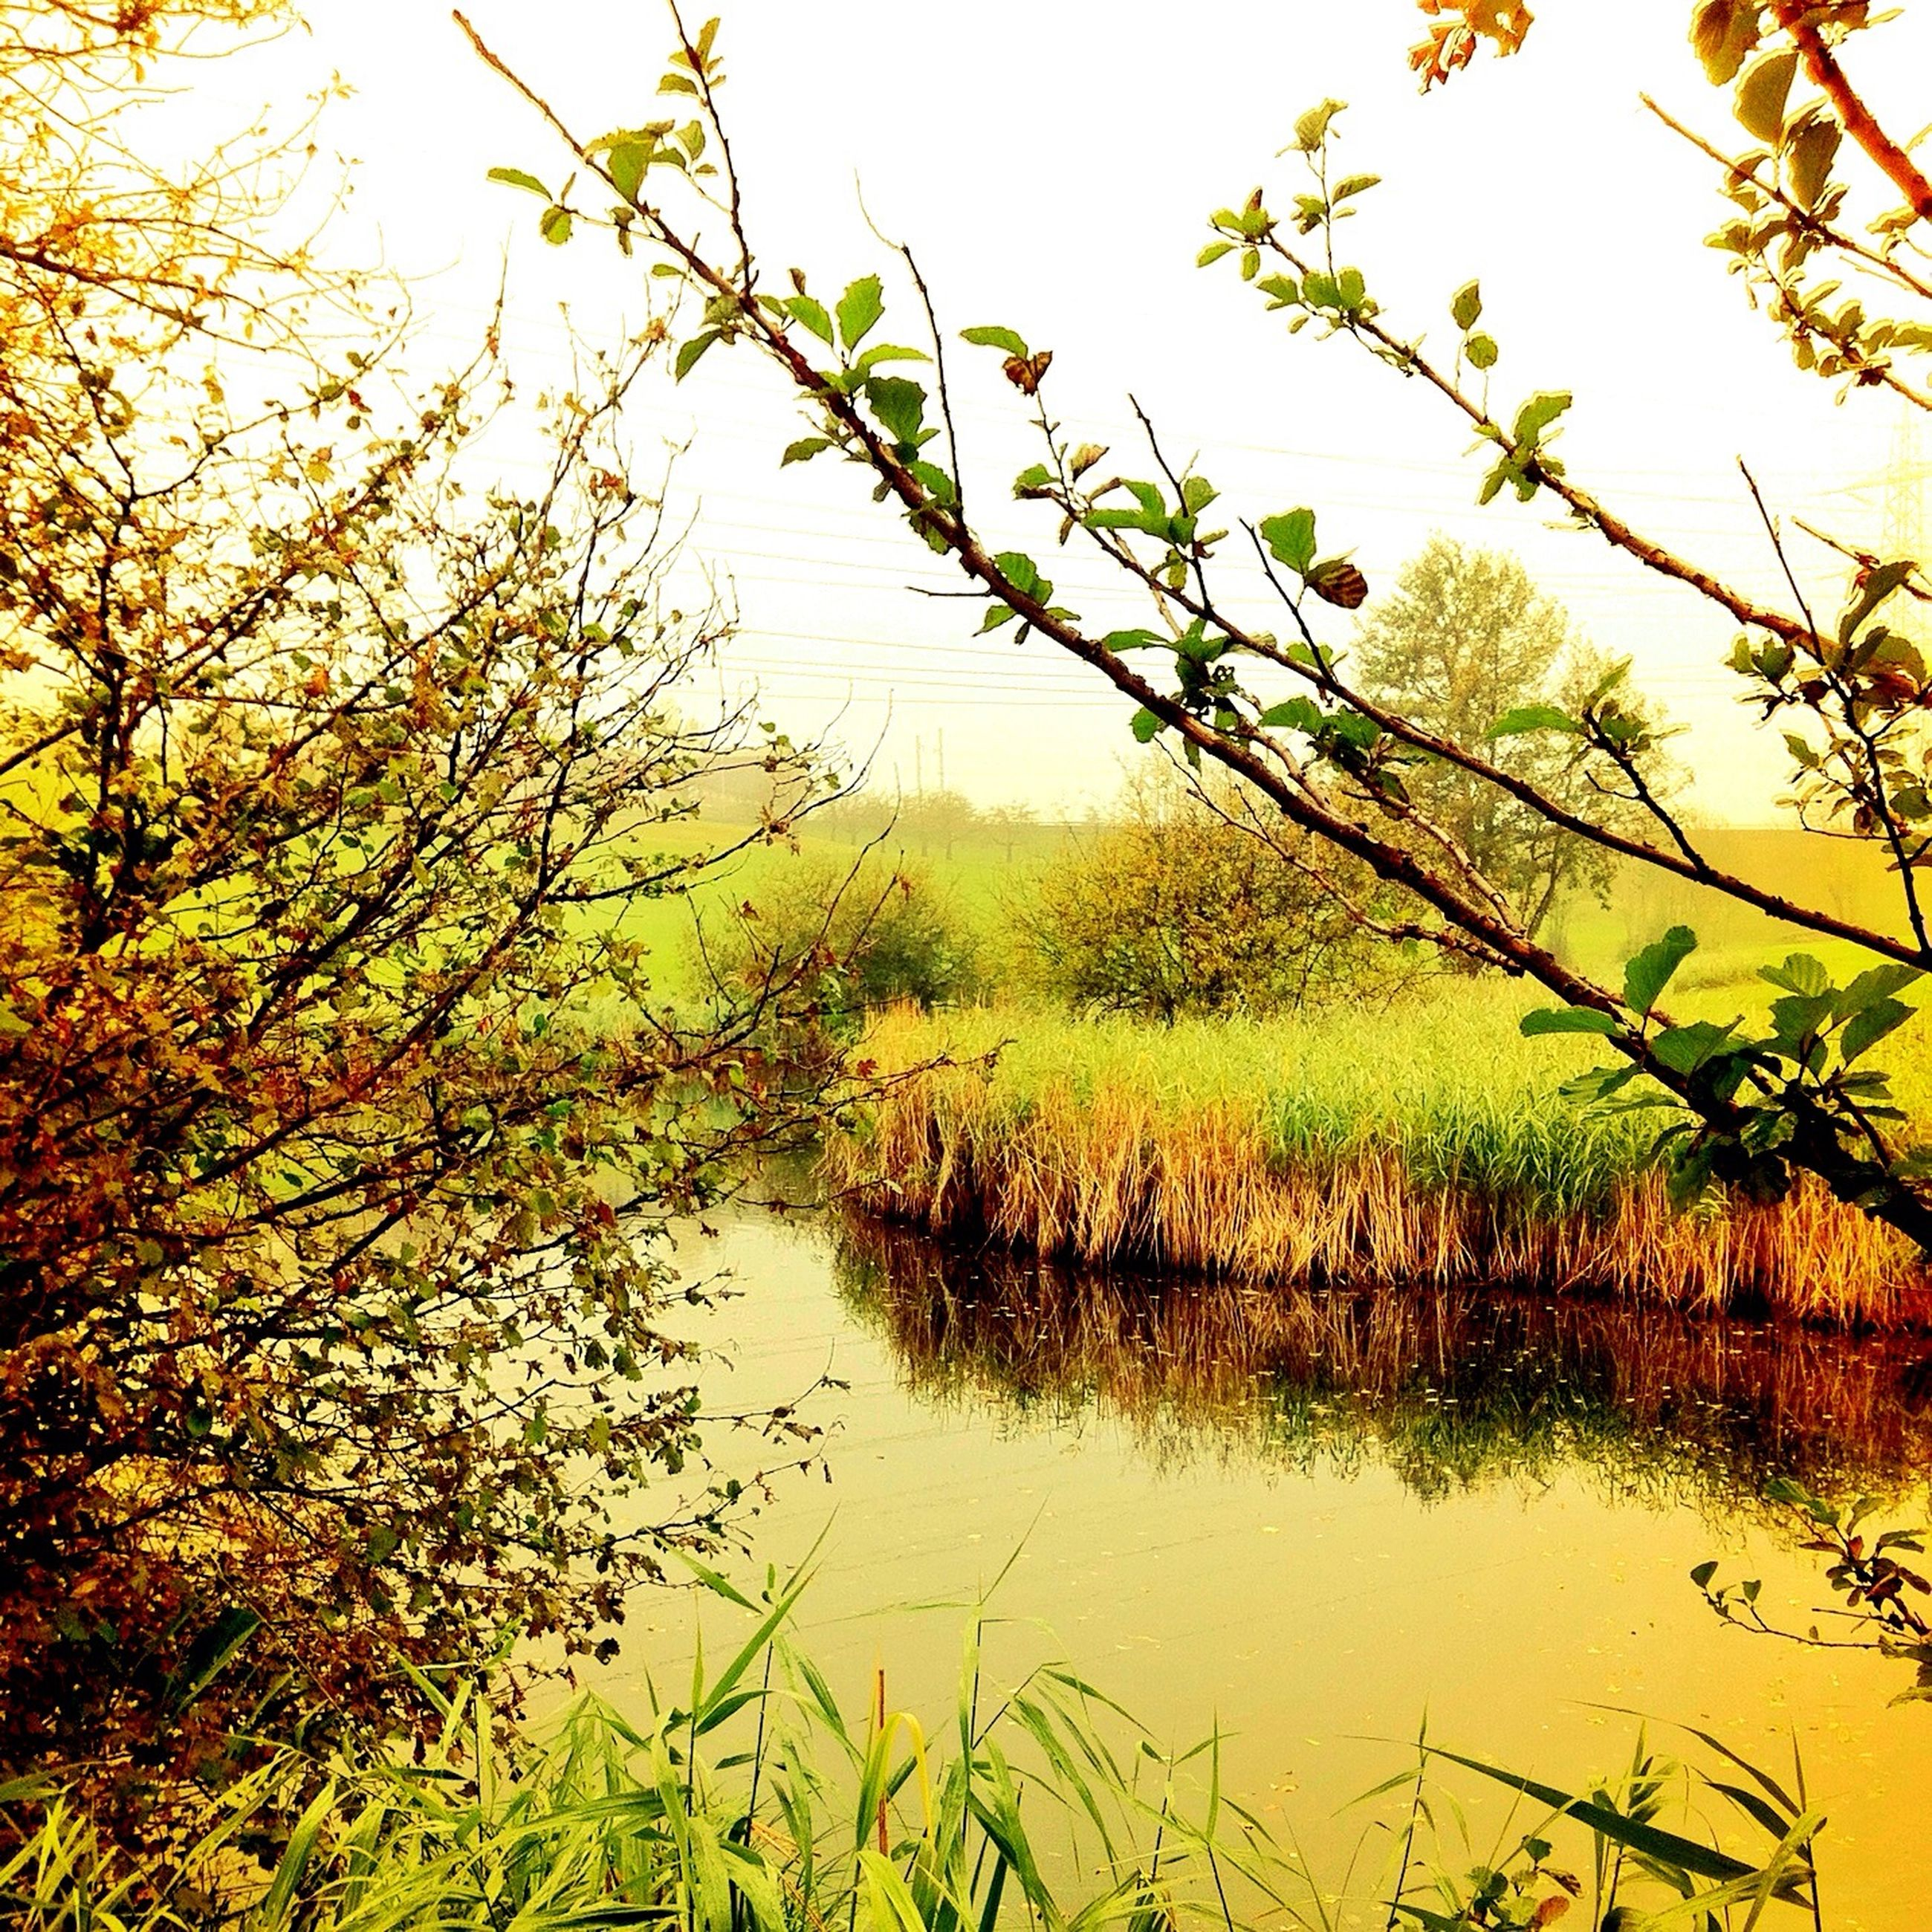 tree, tranquility, water, tranquil scene, beauty in nature, scenics, lake, growth, nature, branch, reflection, sky, clear sky, idyllic, plant, green color, yellow, day, outdoors, landscape